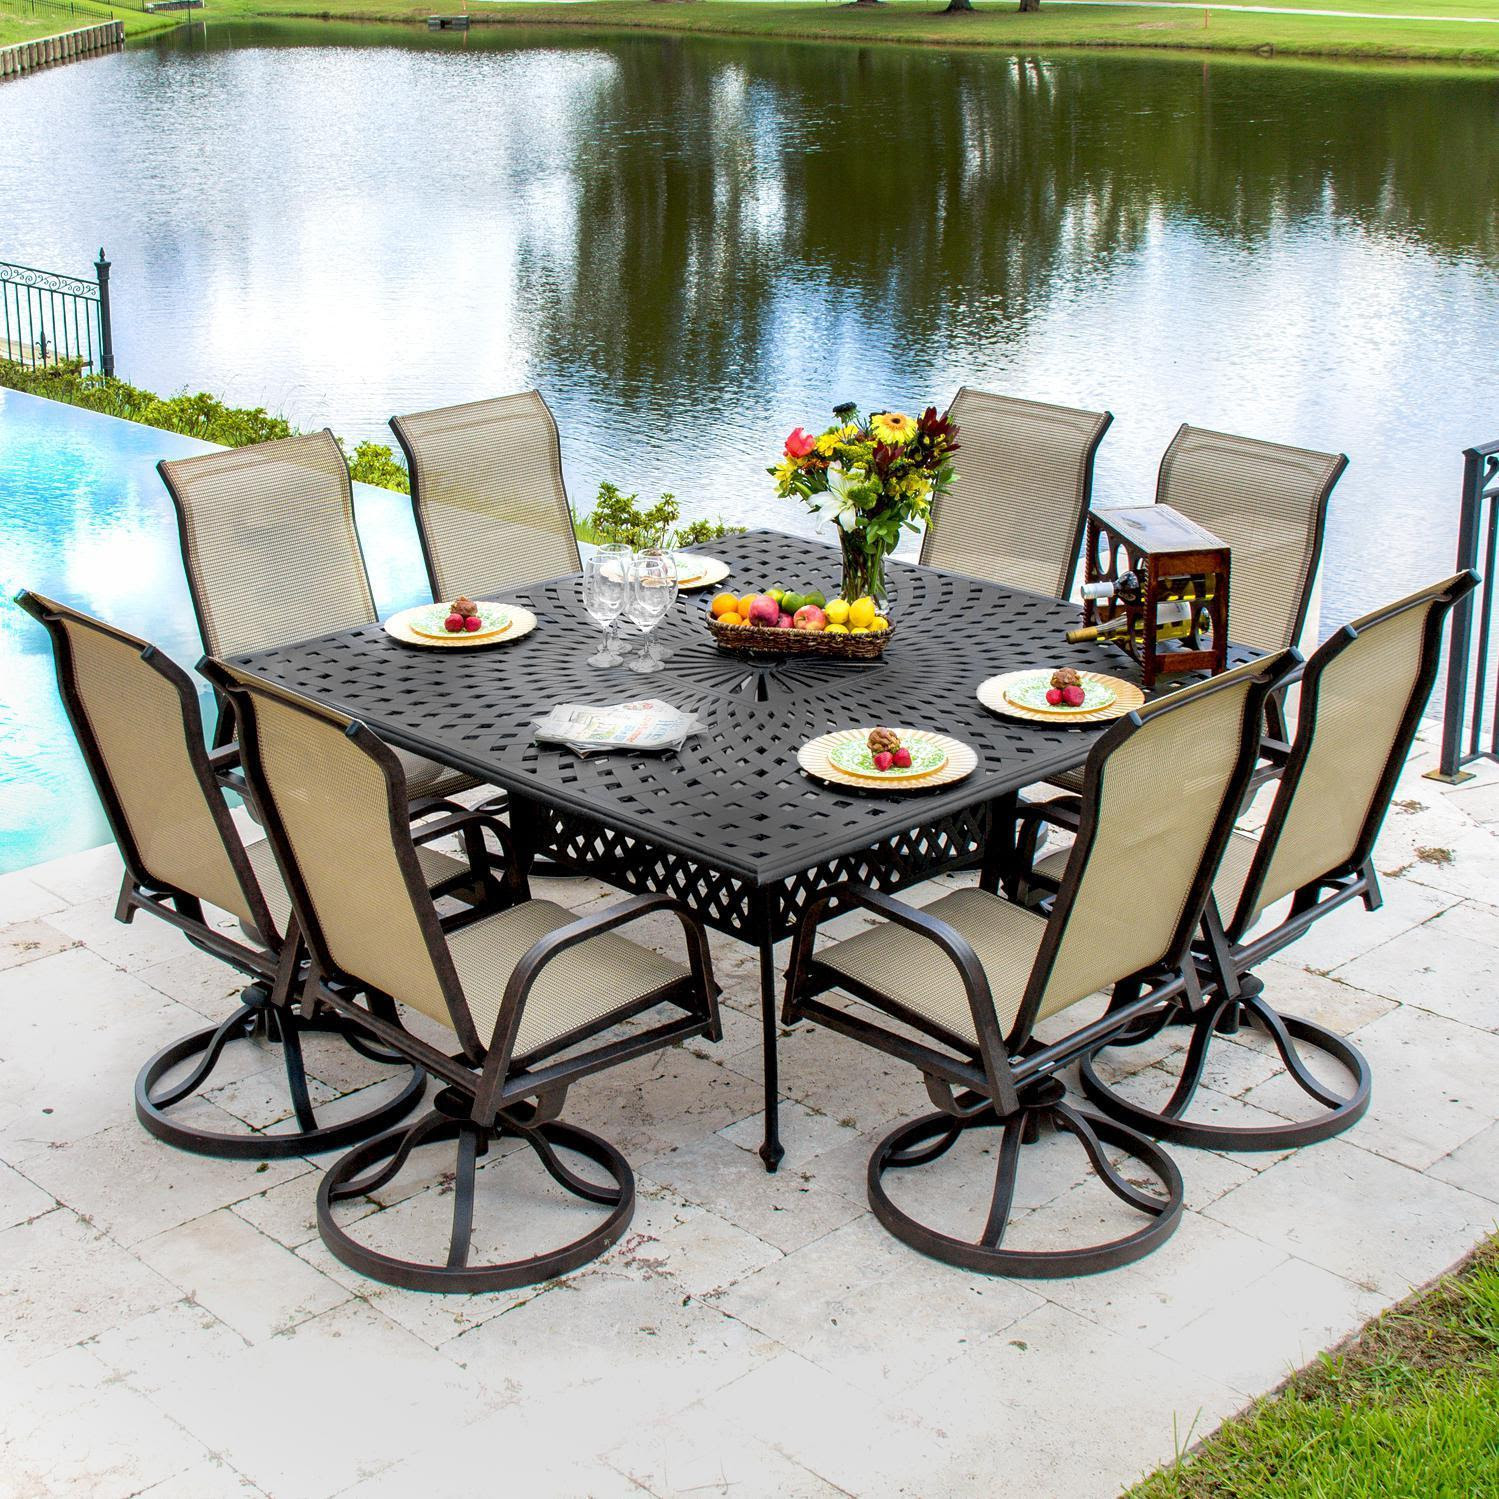 Patio dining sets for 8 people | Hawk Haven